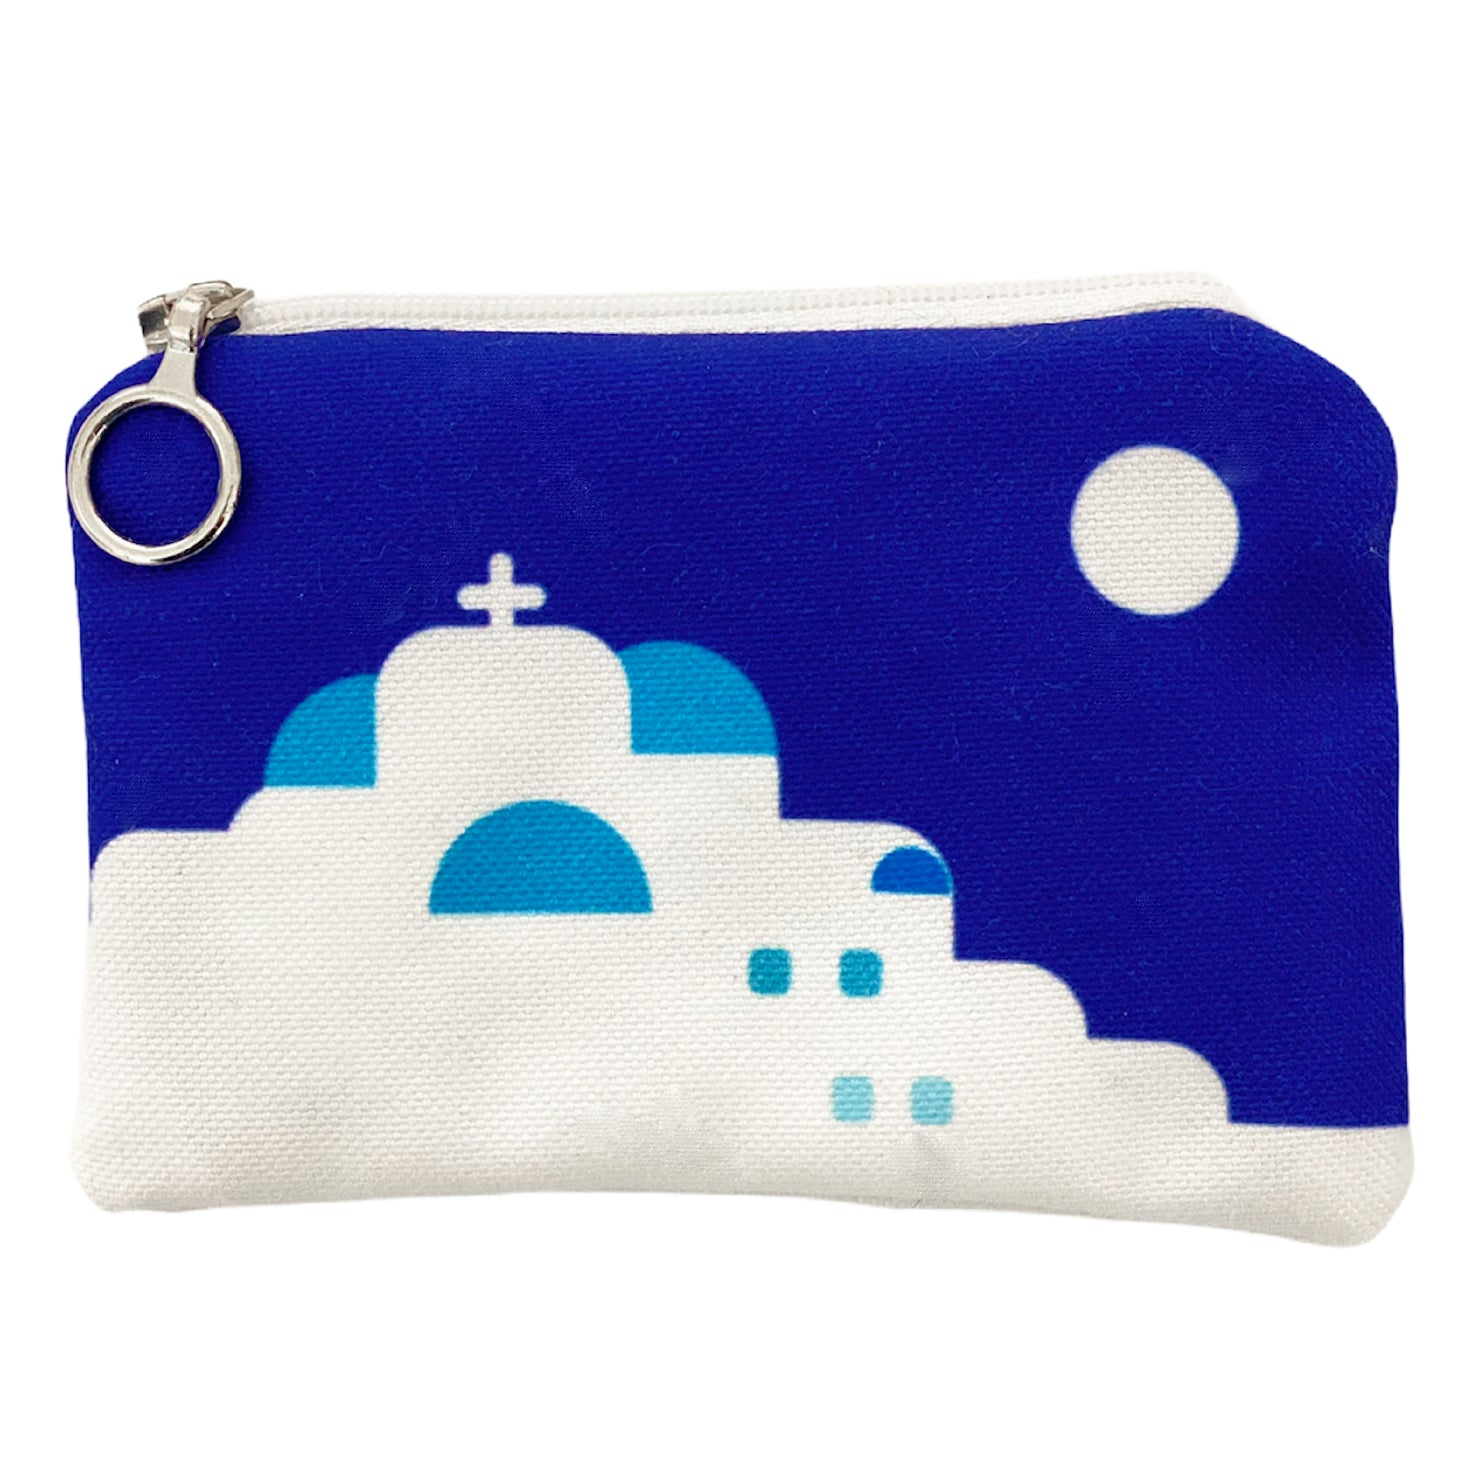 A day in Cyclades mini coin purse